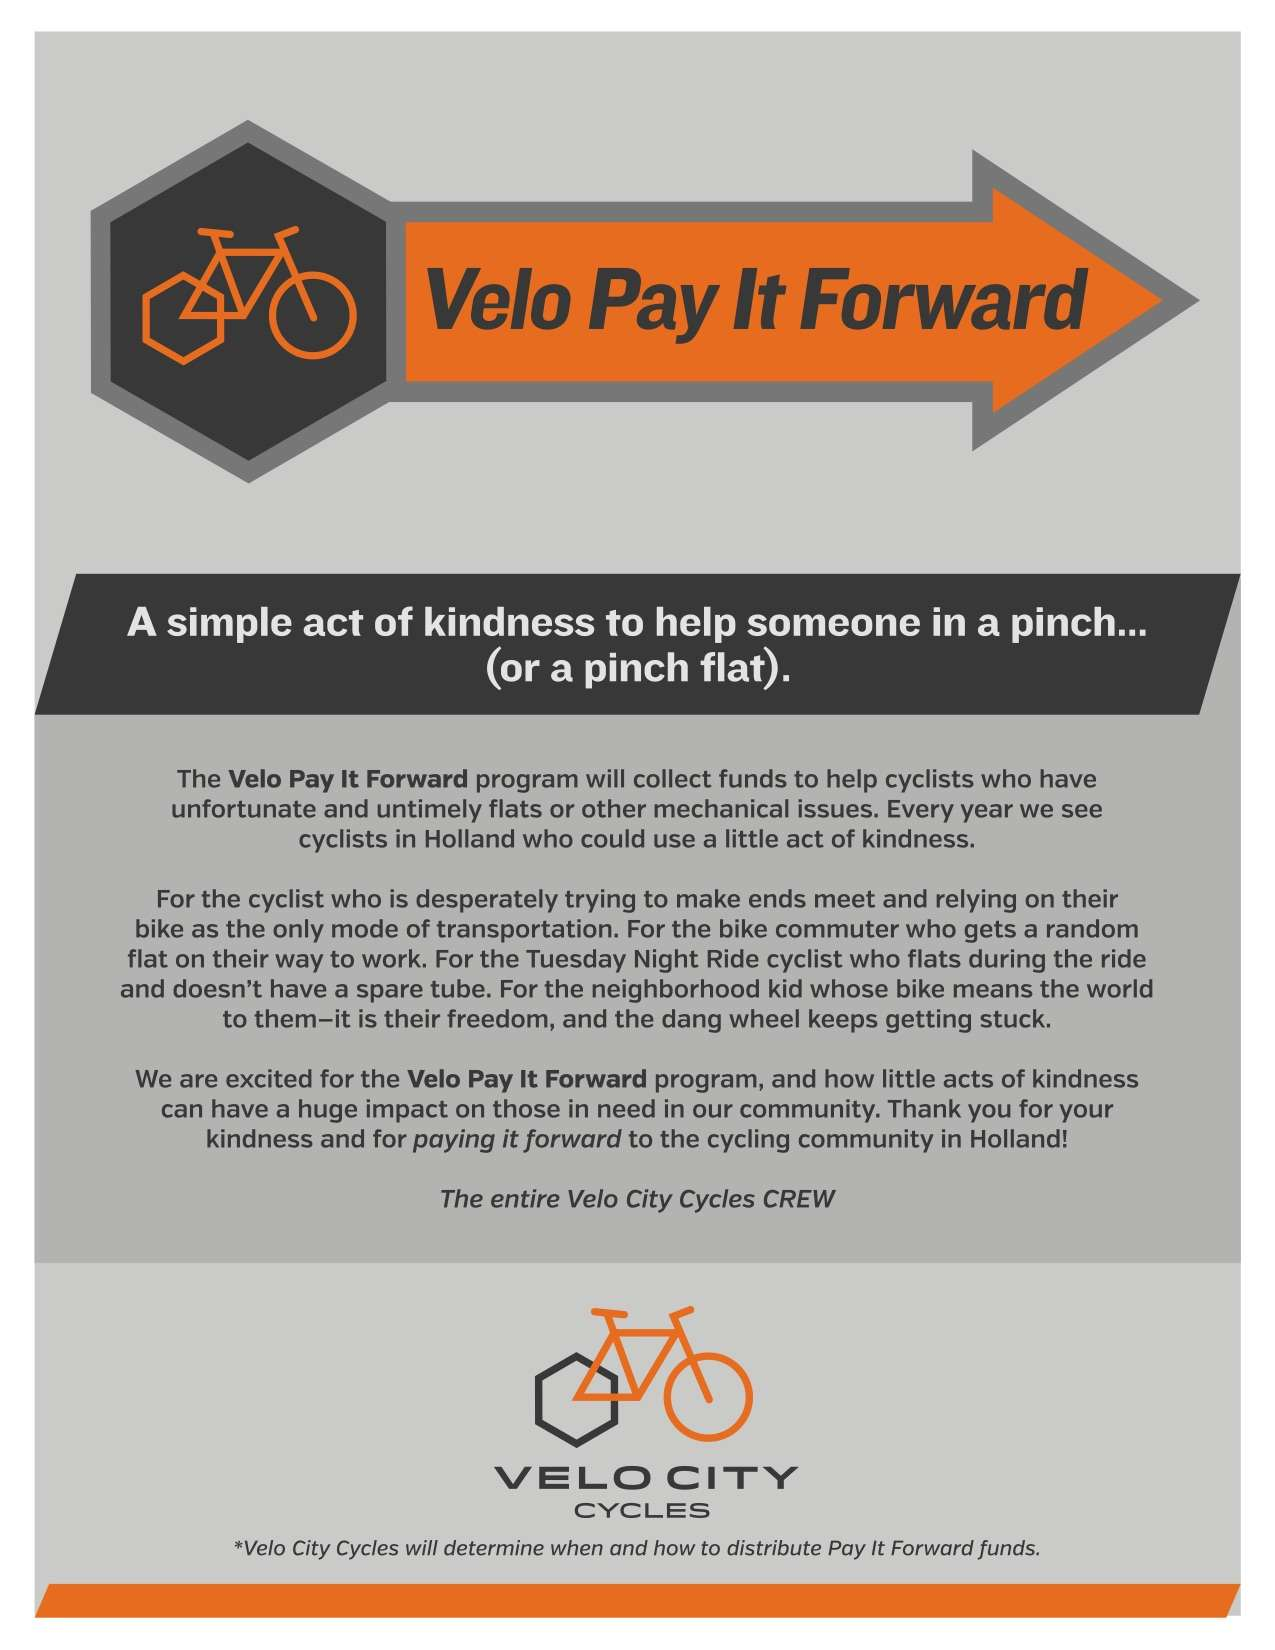 Velo Pay It Forward Information Image